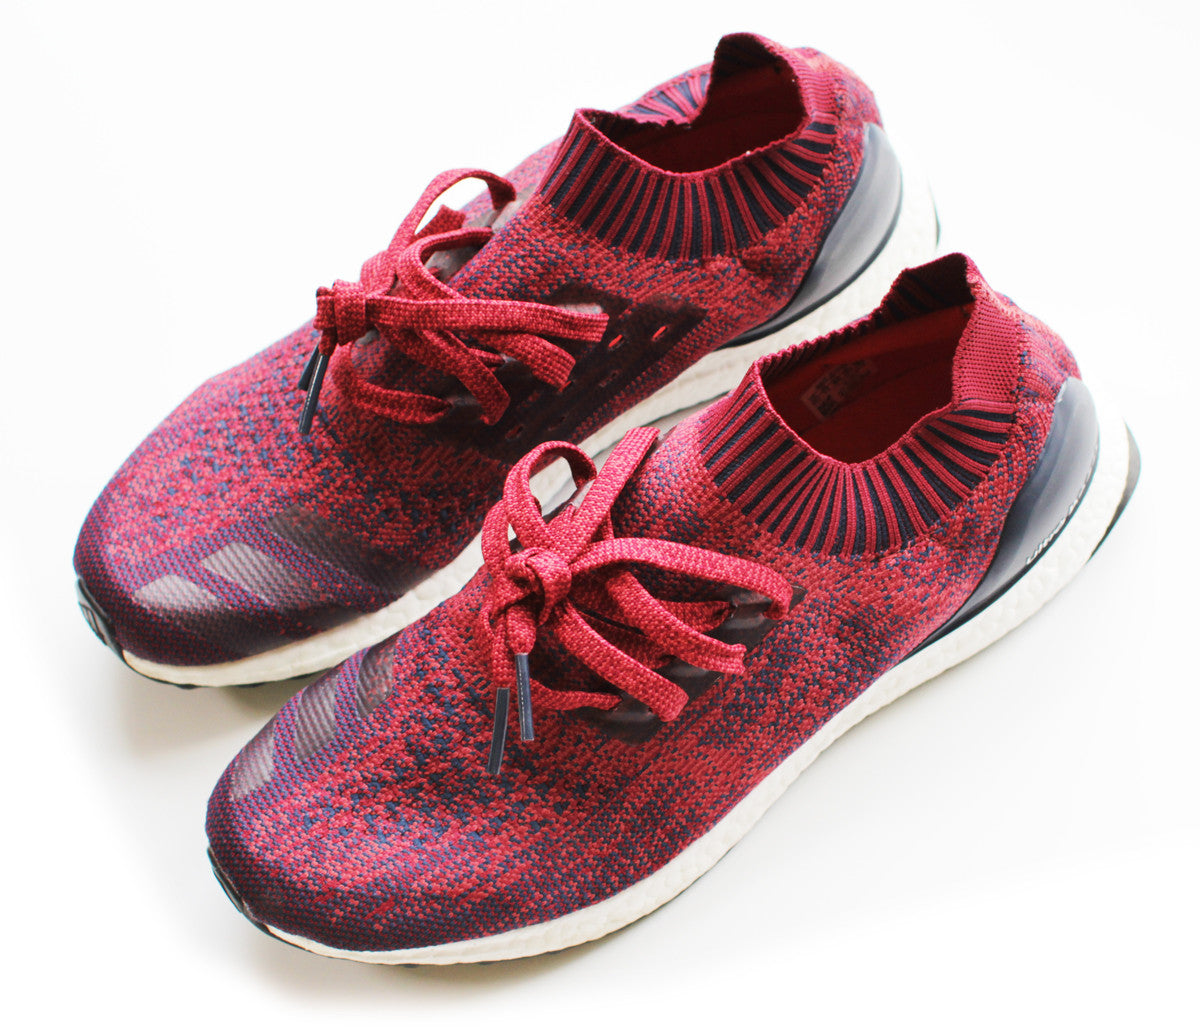 b9a47c9694745 Adidas Ultra Boost Uncaged Review – Sundried Activewear